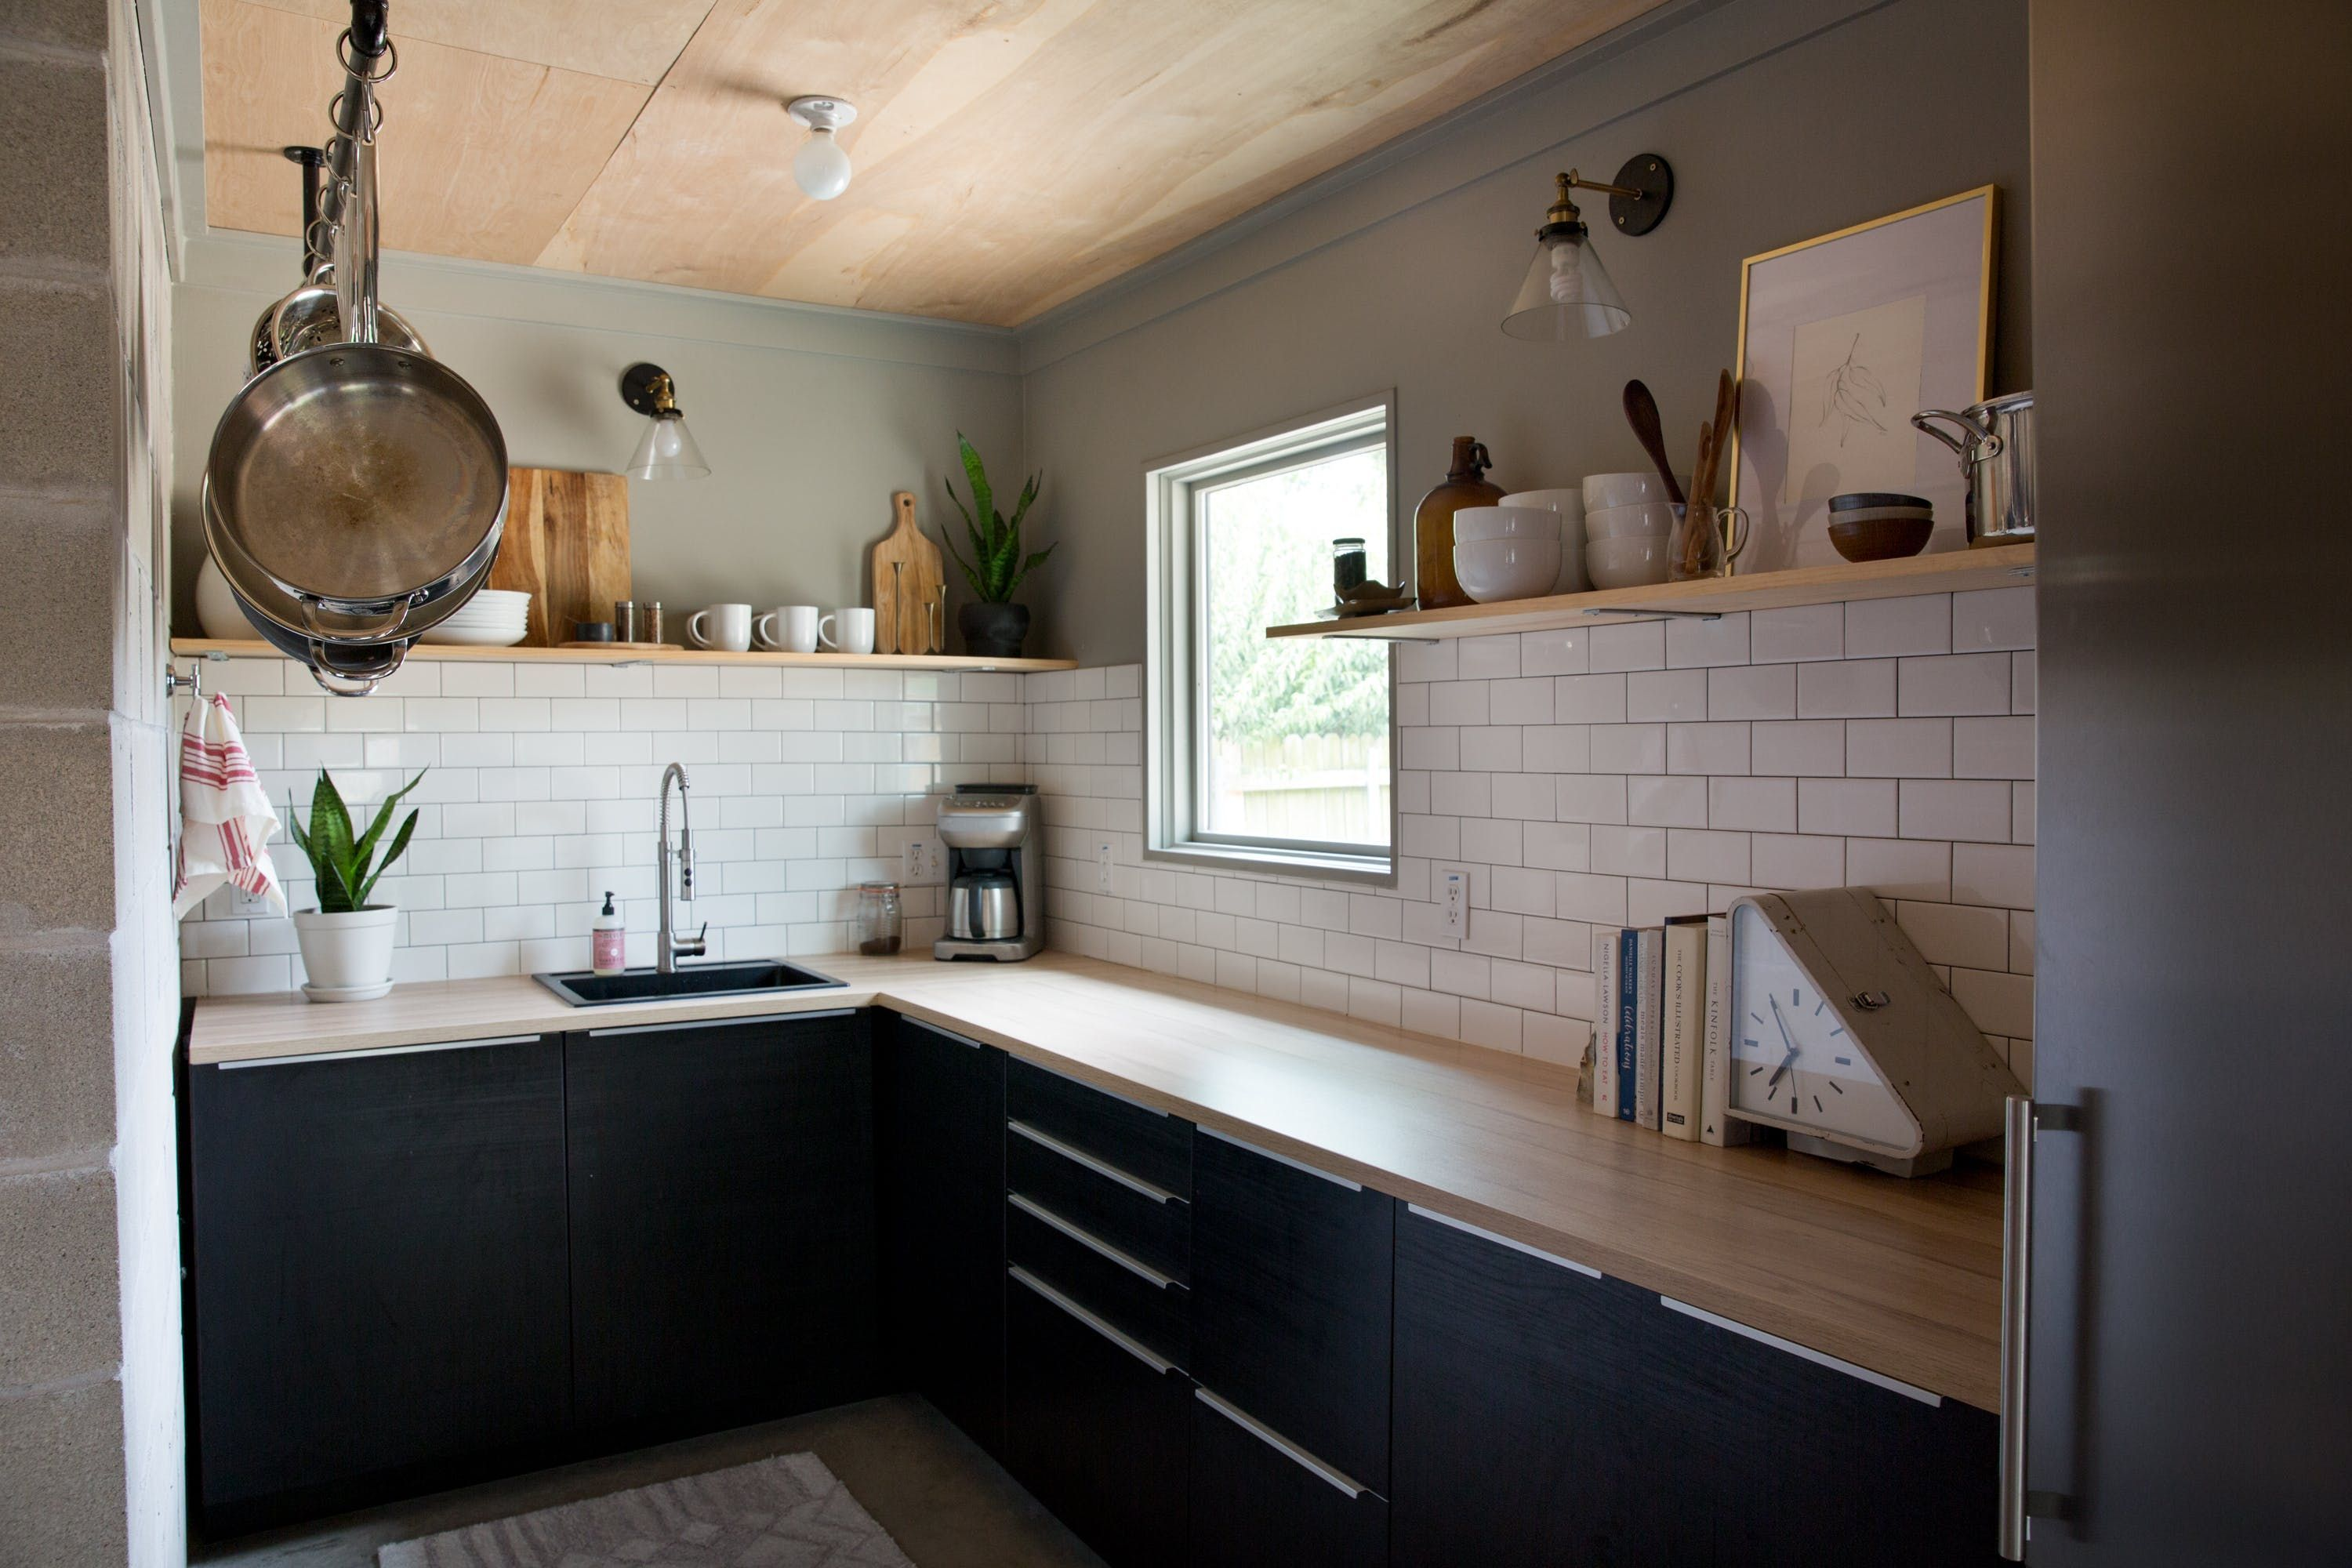 a modest modern tiny home in a garage in 2019 kitchens without upper cabinets upper on farmhouse kitchen no upper cabinets id=82975